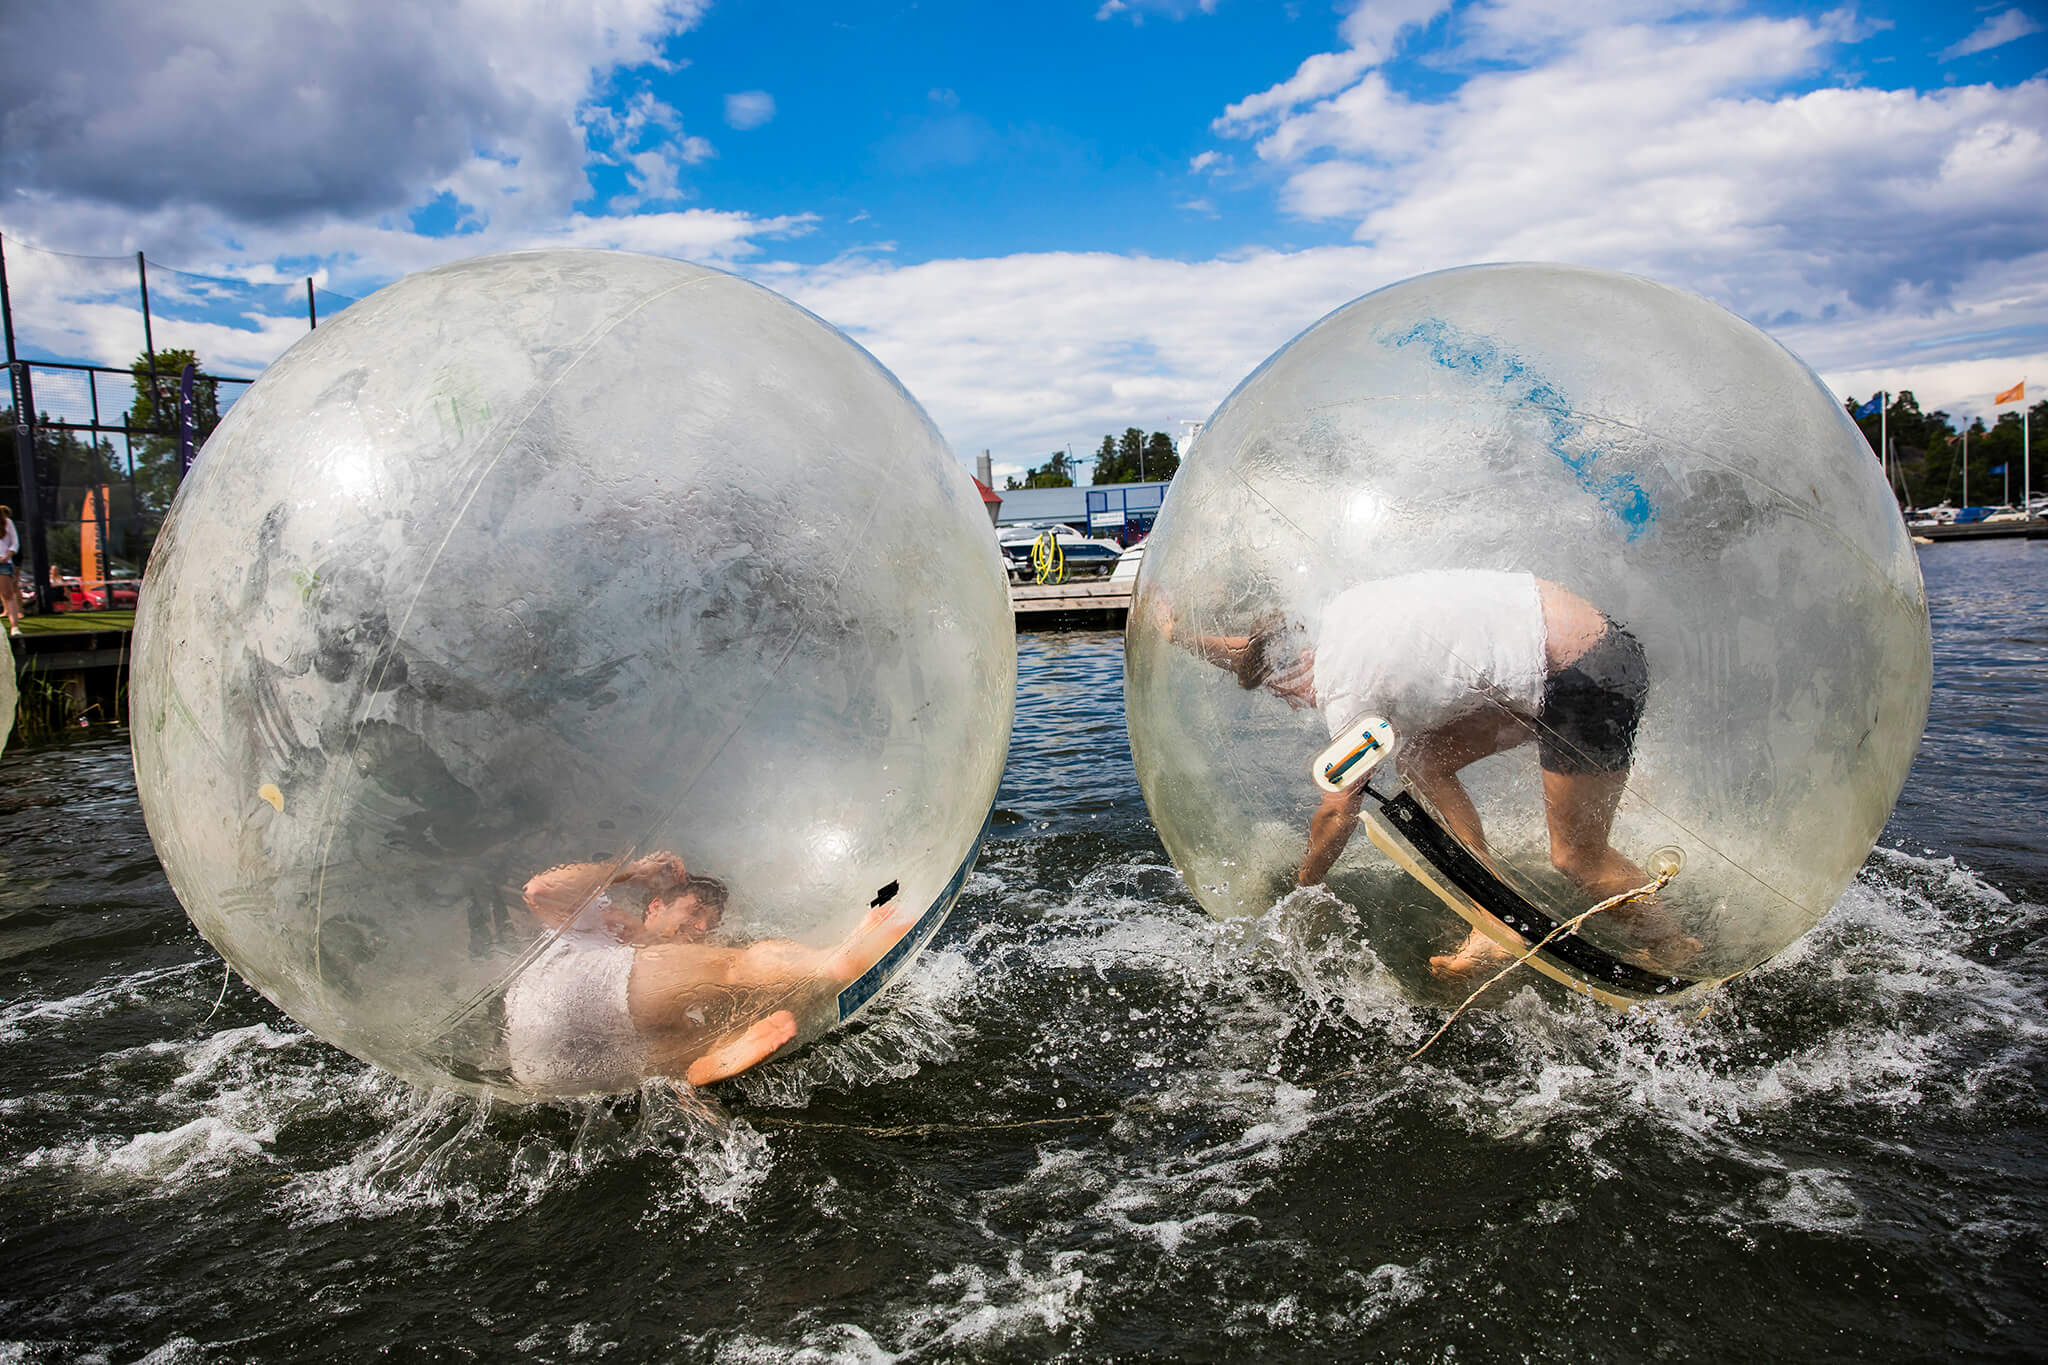 Waterballs i Jungfrusund